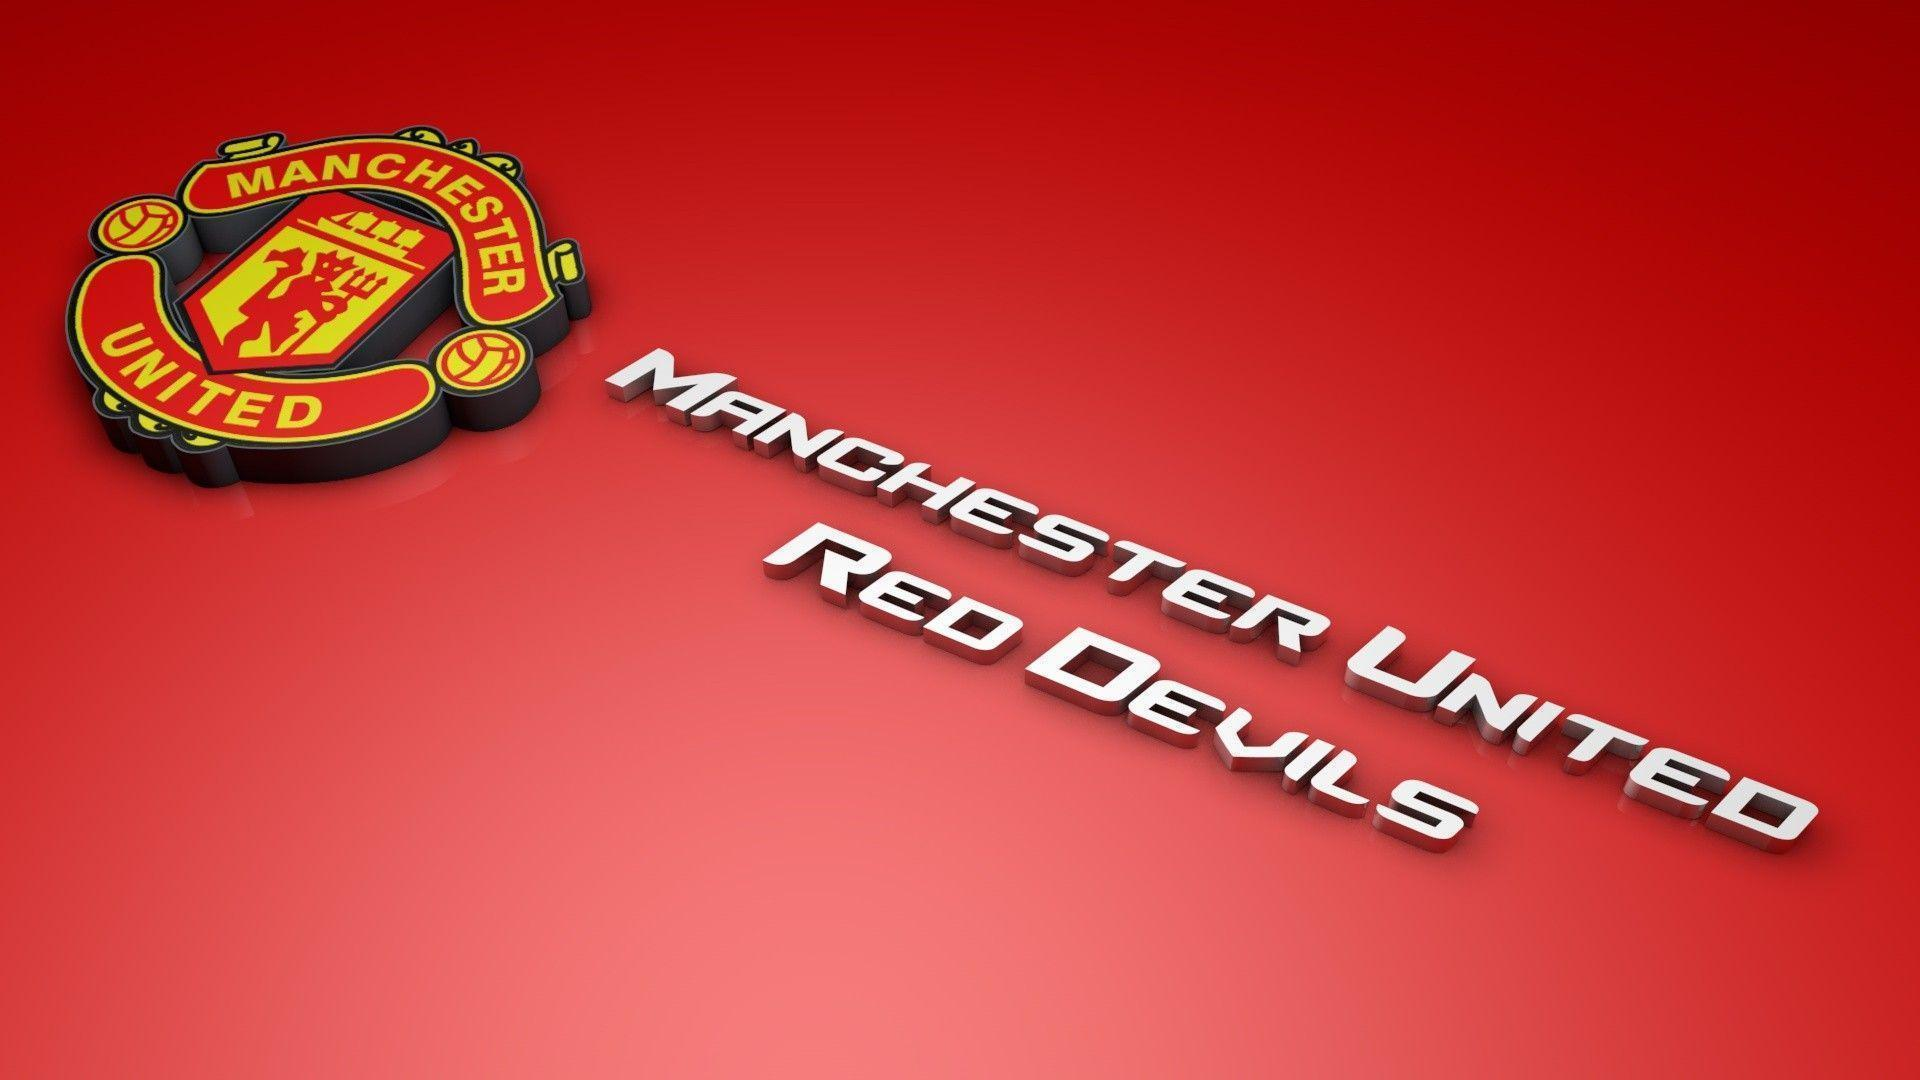 Manchester United Logo Wallpaper 3d Manchester United Logo Wallpapers Wallpaper Cave